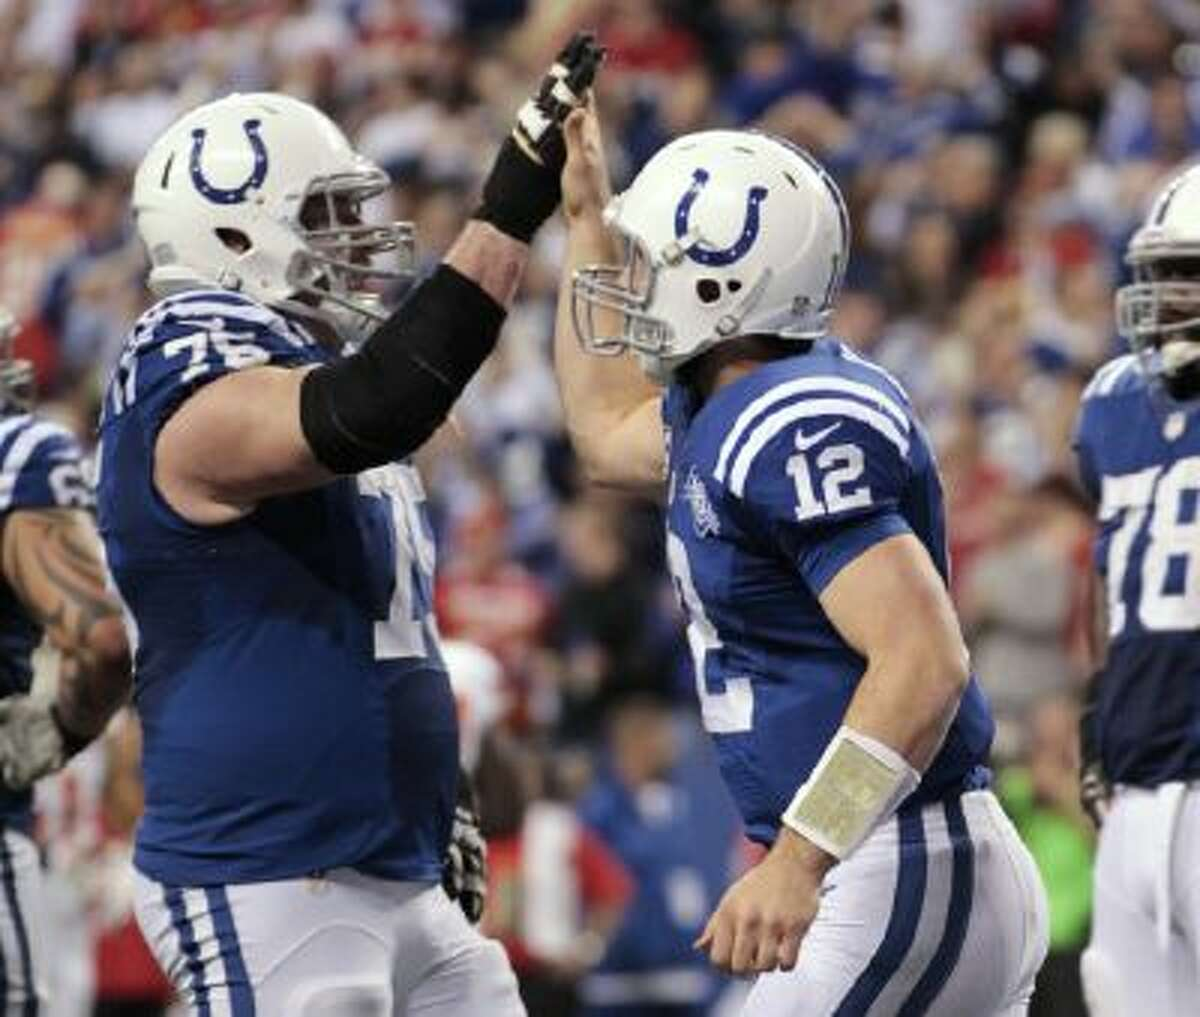 After scoring a touchdown against the Kansas City Chiefs, Indianapolis Colts quarterback Andrew Luck (12) celebrates with lineman Mike McGlynn (75).